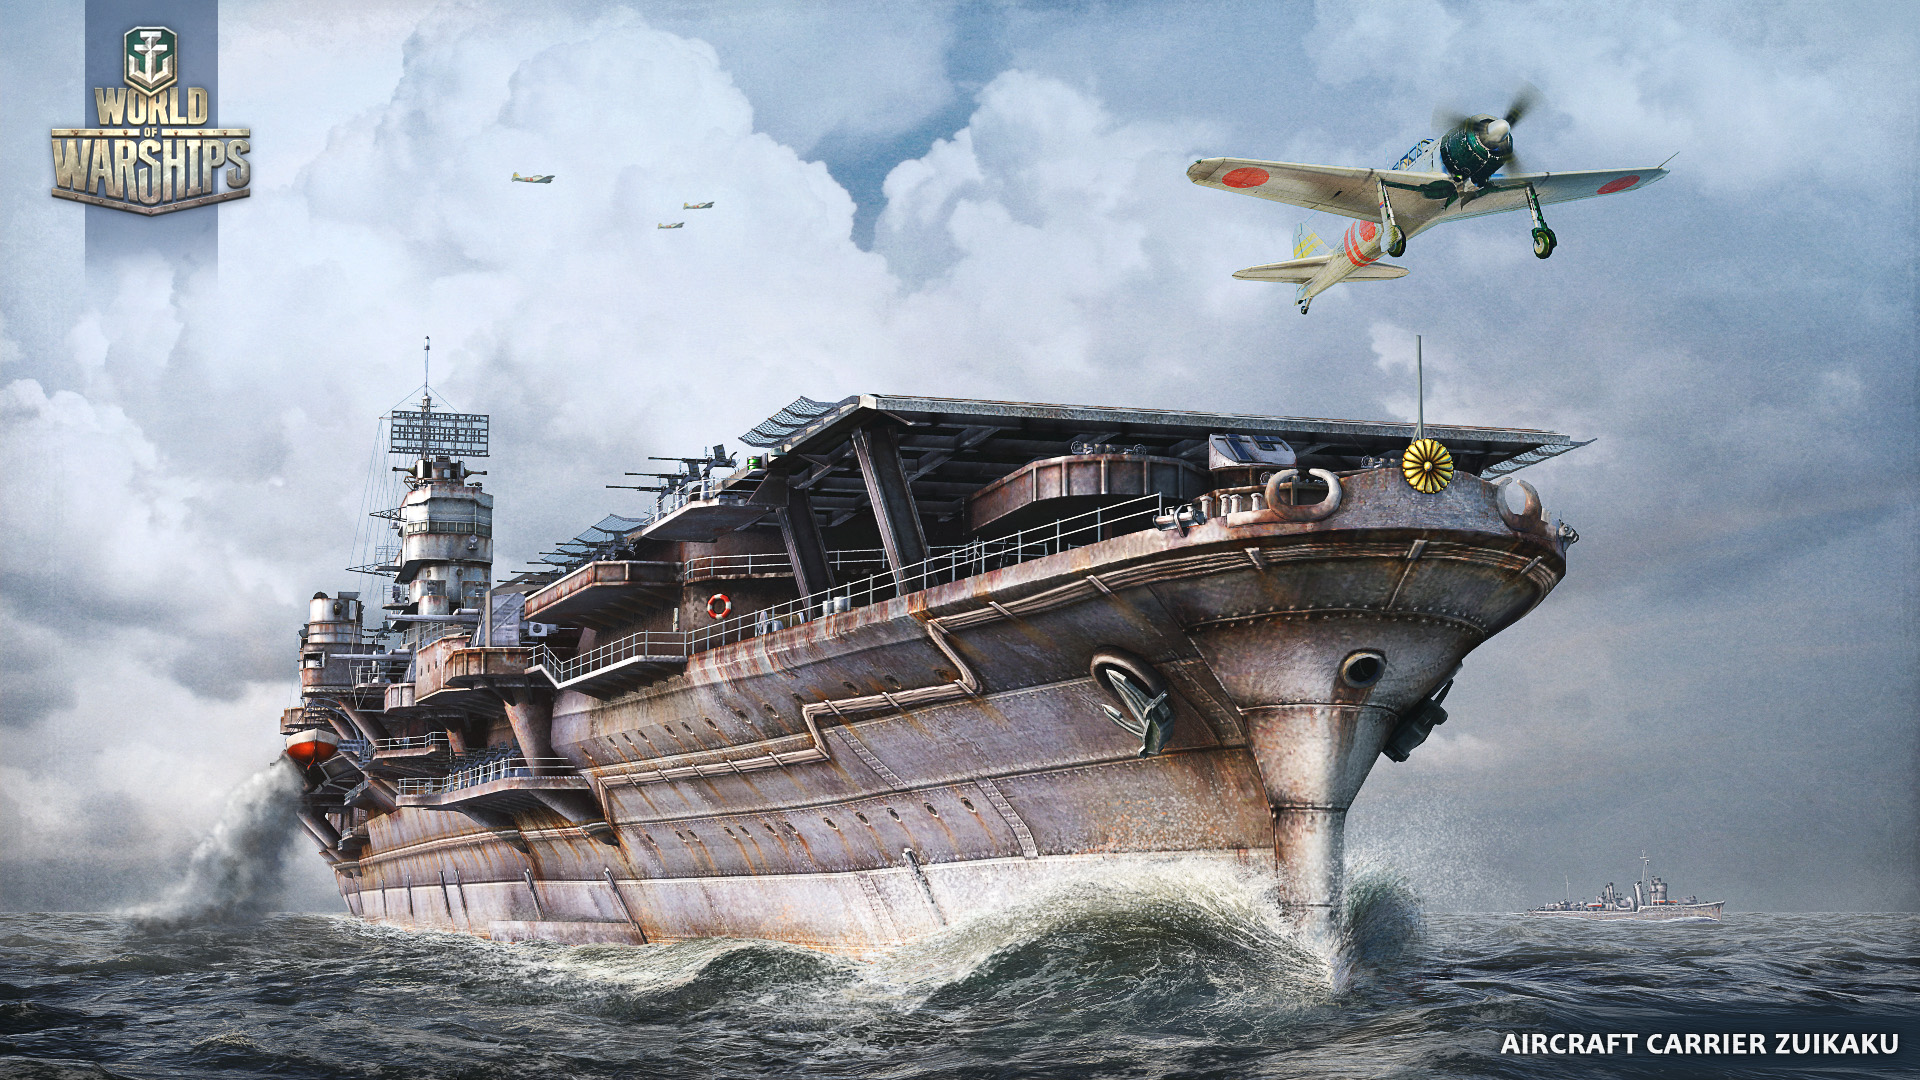 Devs WoWS wallpapers   Off topic   World of Warships official forum 1920x1080